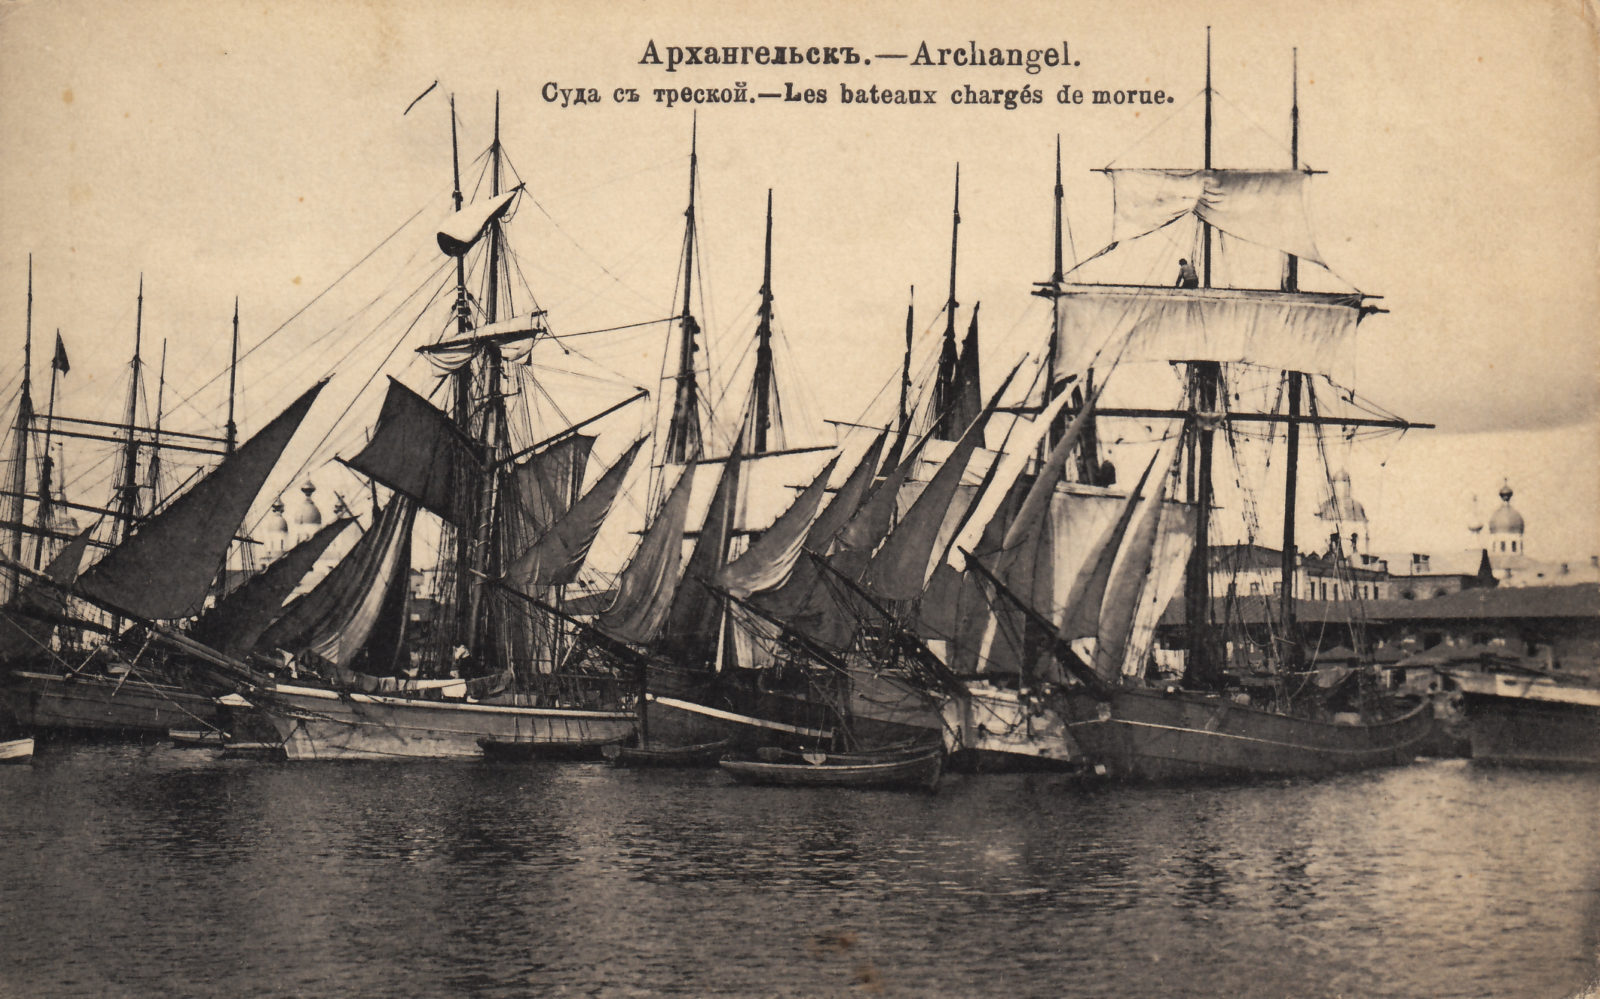 Arkhangelsk - Boats with cod fish (Archangel)